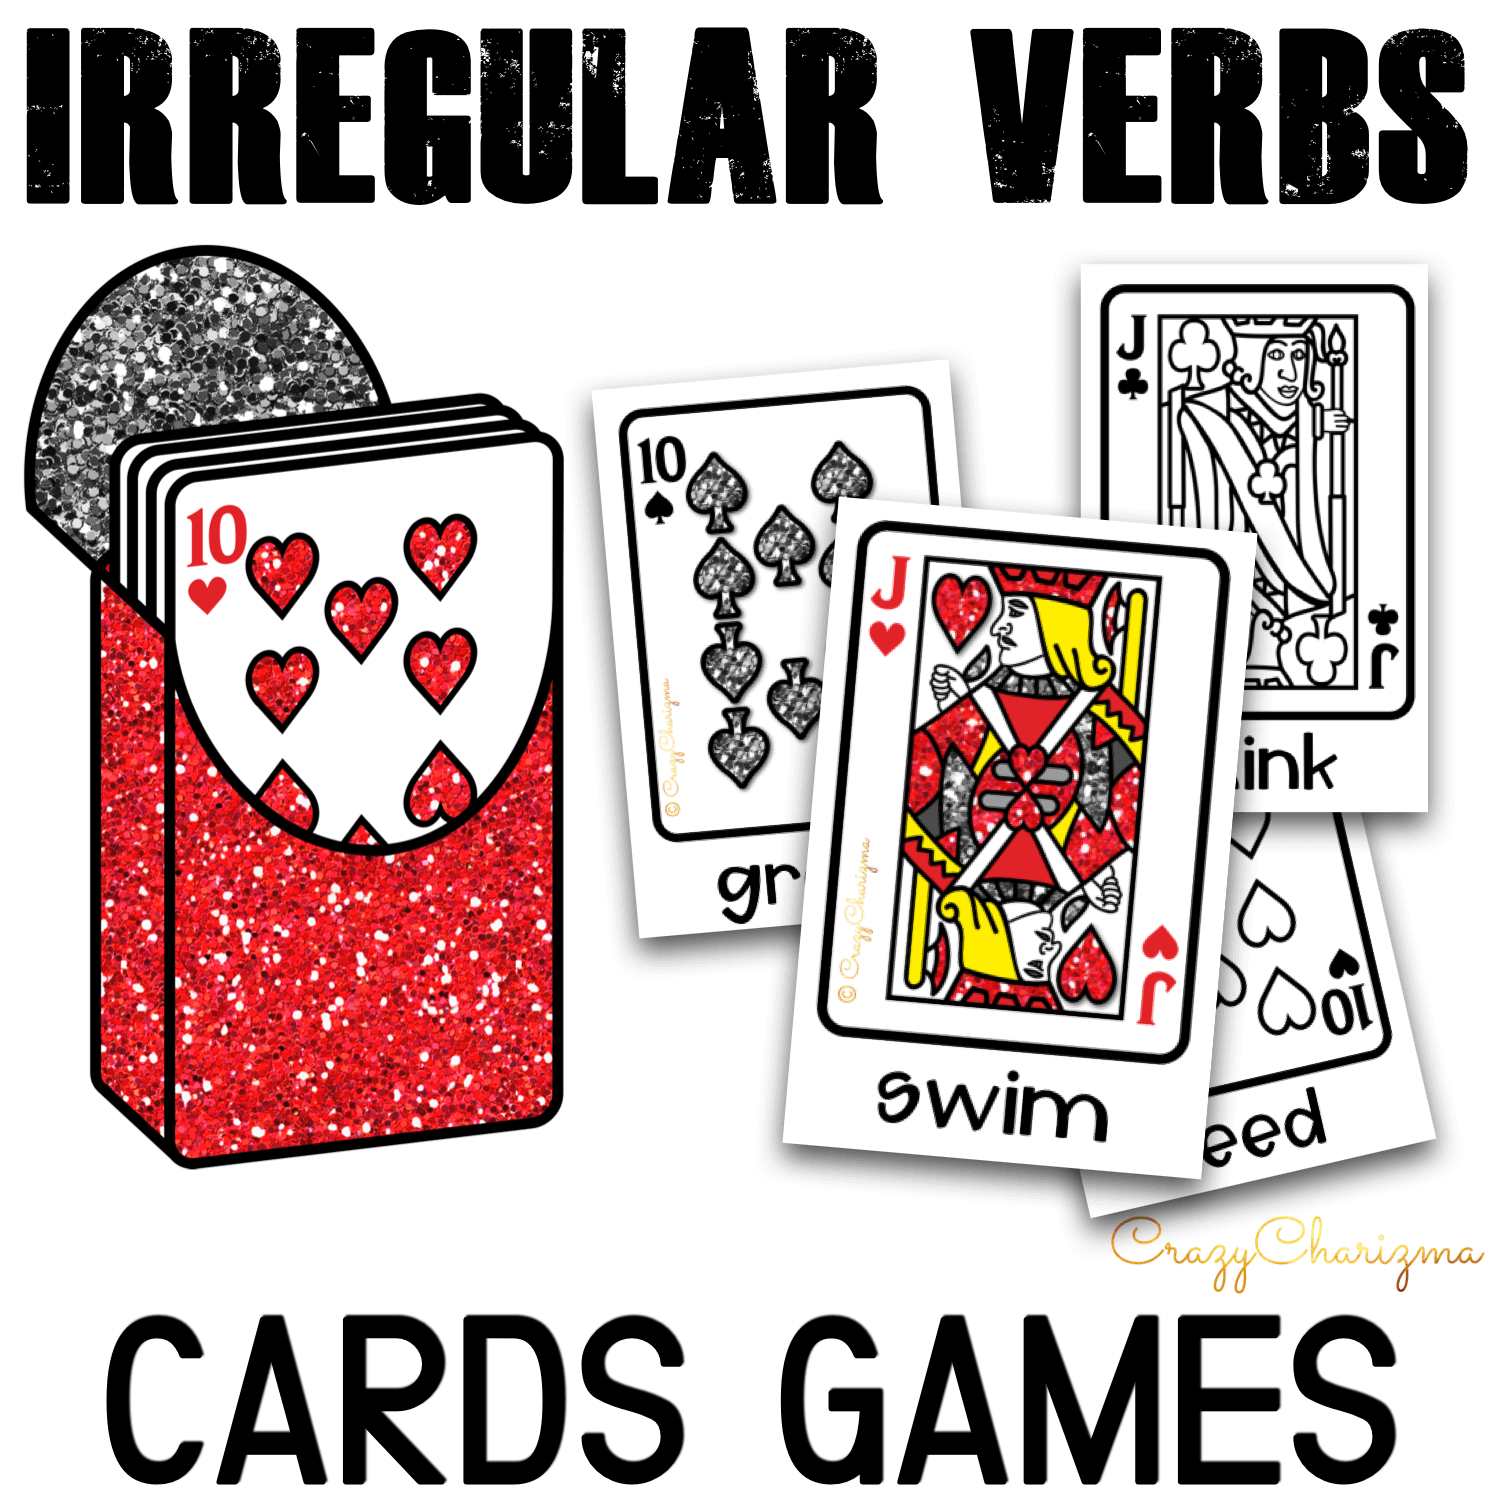 There can't be too many games to practice irregular verbs, right? Use the cards and play with irregular verbs in 10 engaging ways! Print in full color or B&W and start using in your classroom.